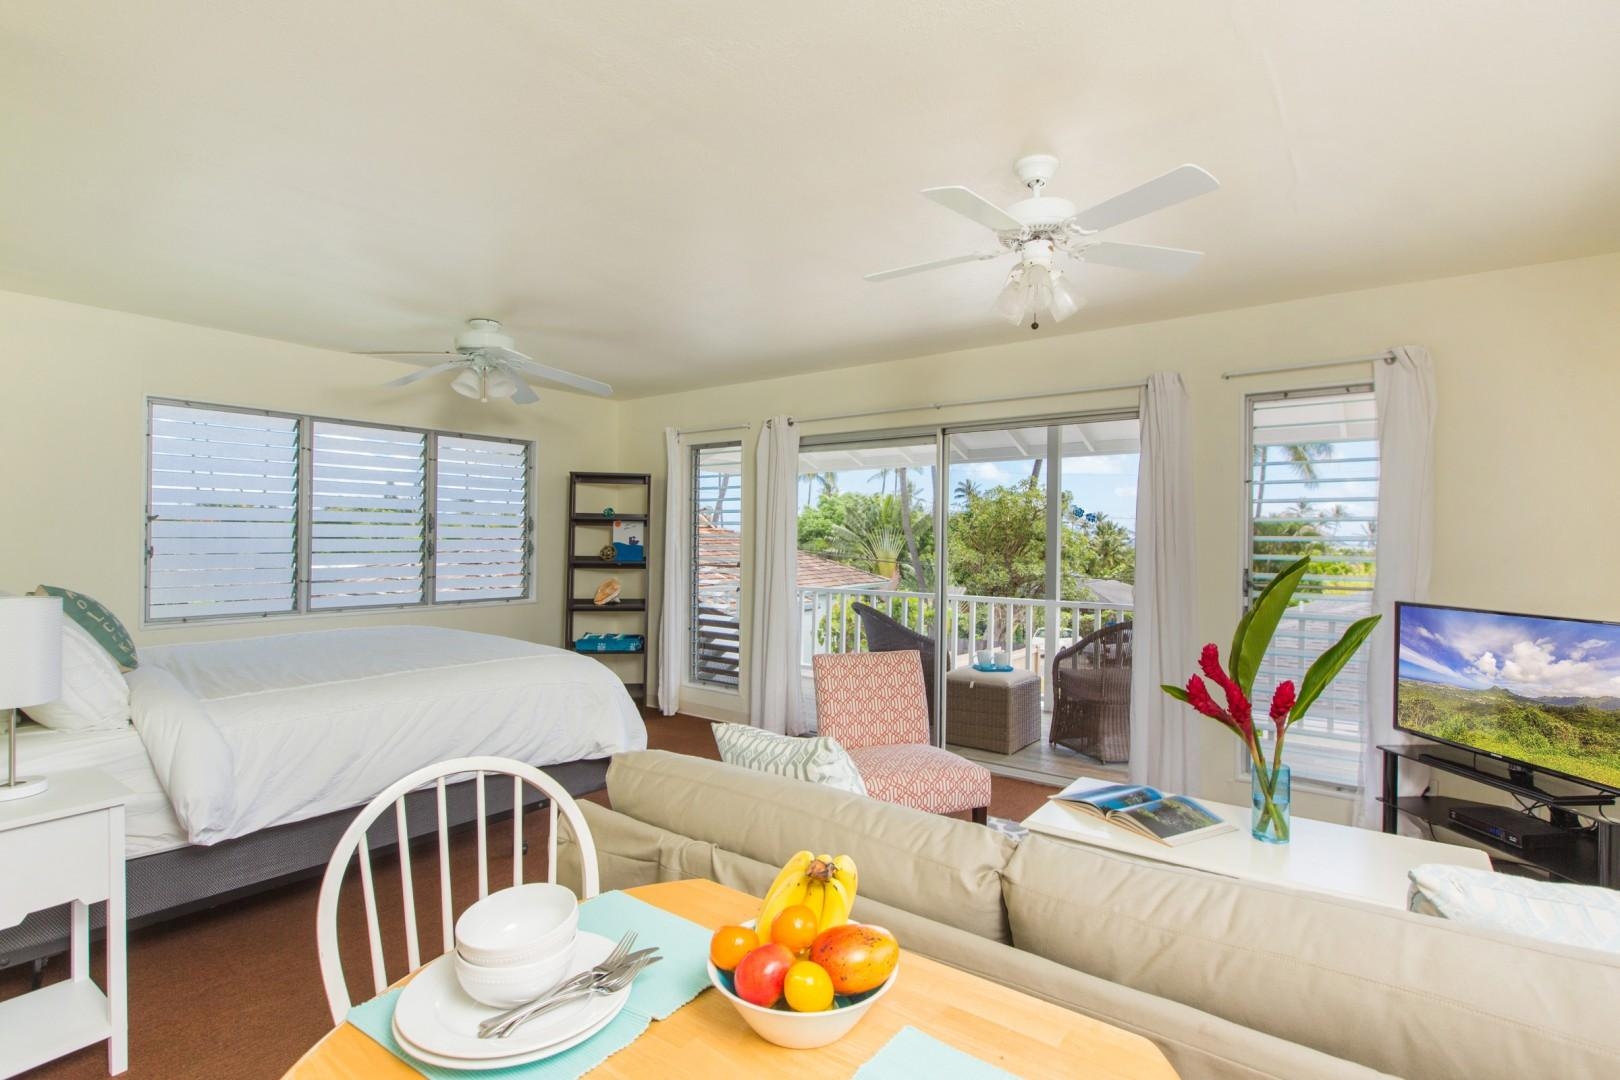 Guest cottage with king bed, pull-out sofa, full bath, lanai, wet bar, and new split air conditioning!